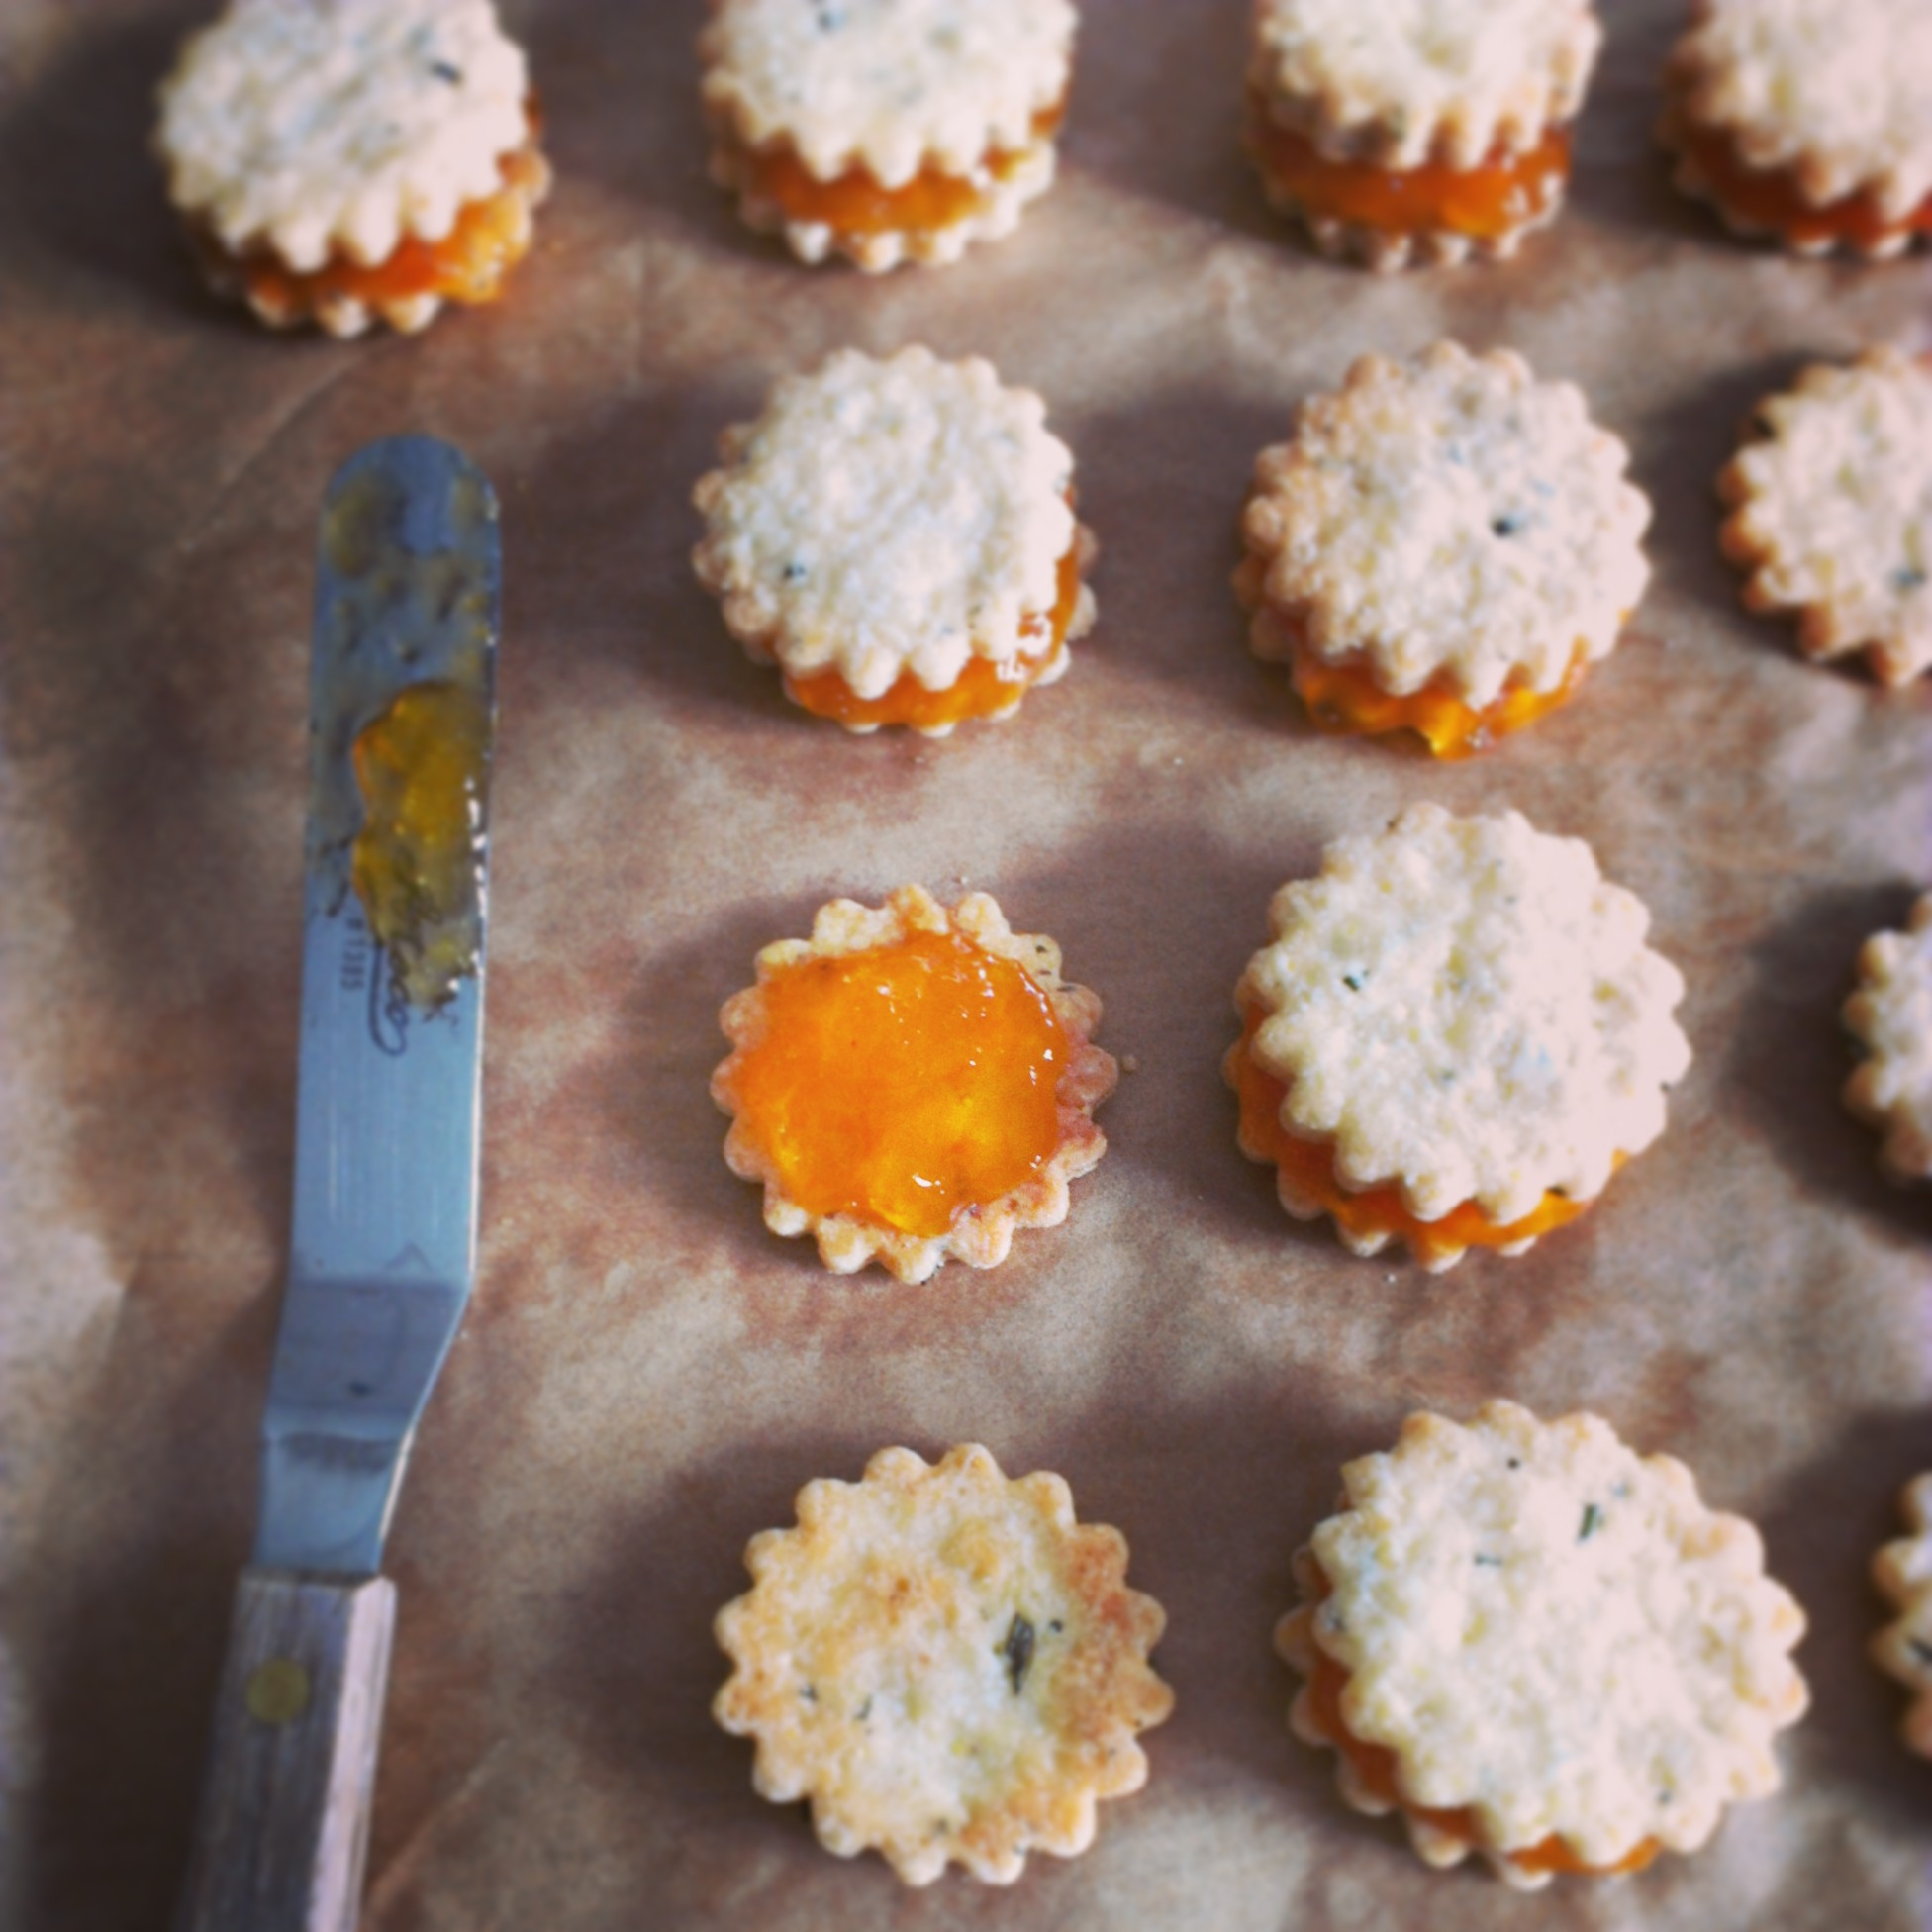 Rosemary Shortbread with Apricot Jam